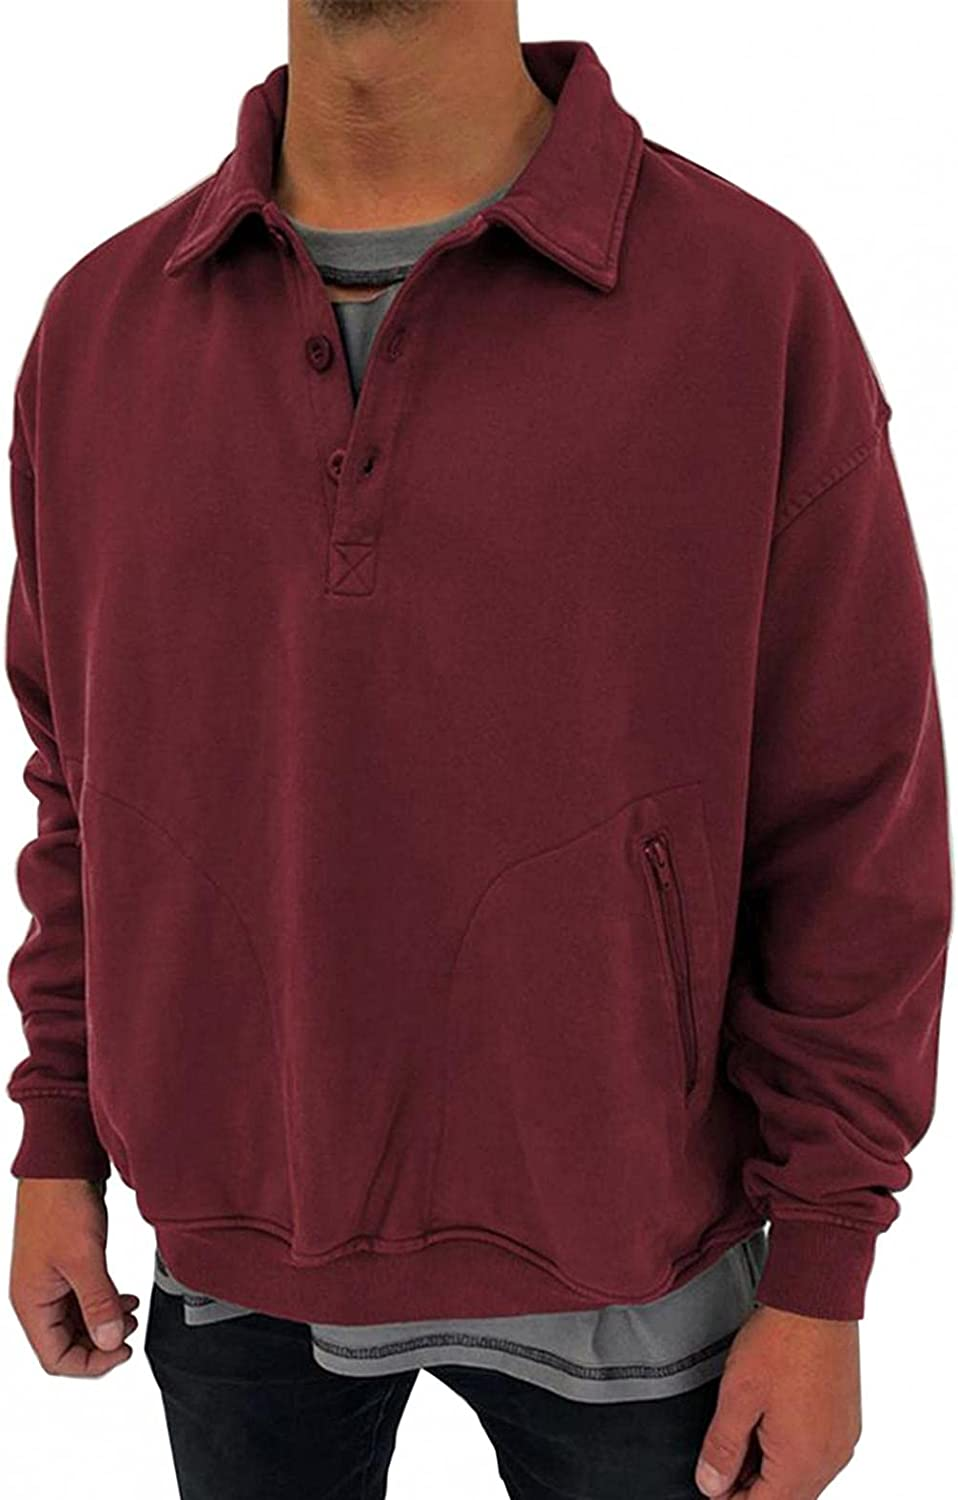 Qsctys Mens Pullover Shirts Polo V-Neck Casual Sweatshirts Solid Color Loose Fit Basic Henley Long Sleeve Fashion T-Shirt